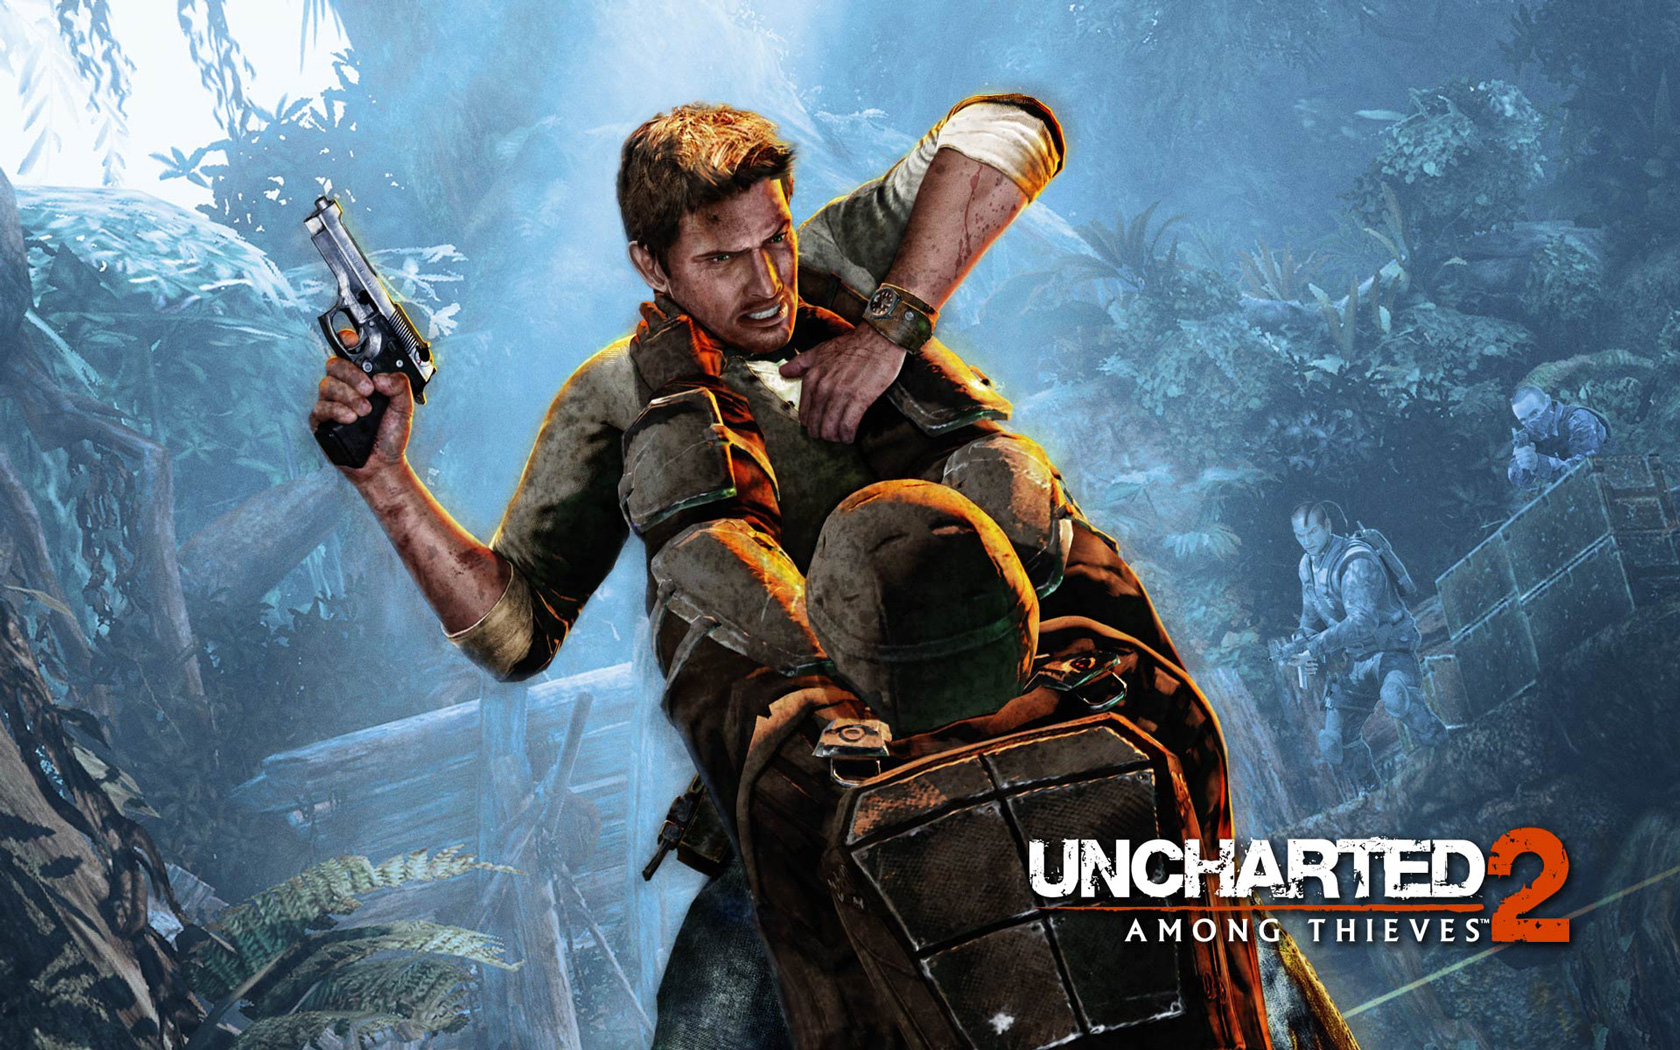 Free Uncharted 2: Among Thieves Wallpaper in 1680x1050